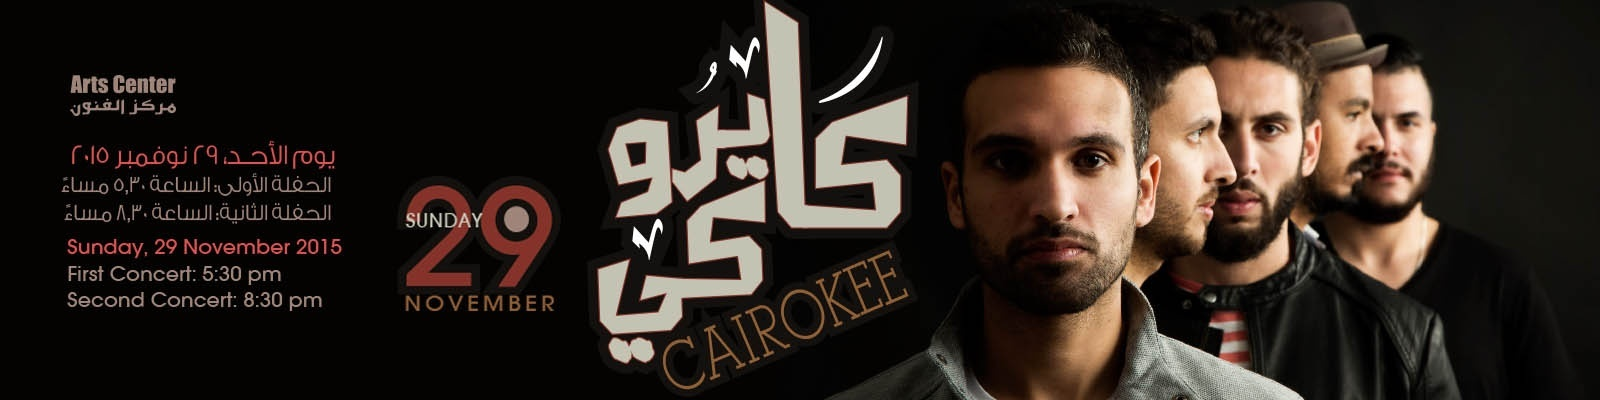 Cairokee Band Concert